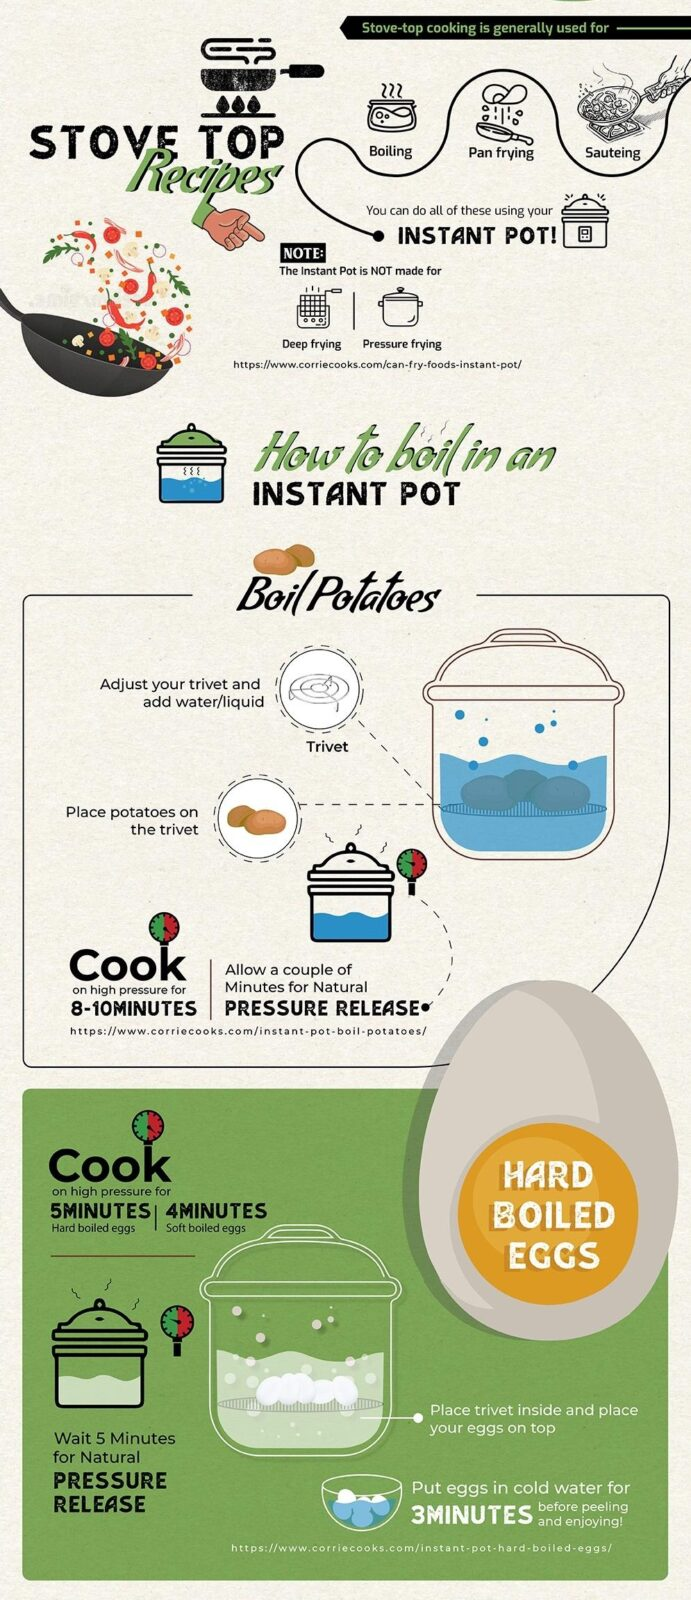 How to Make Stove, Oven, and Steamer Recipes in Your Instant Pot? 1